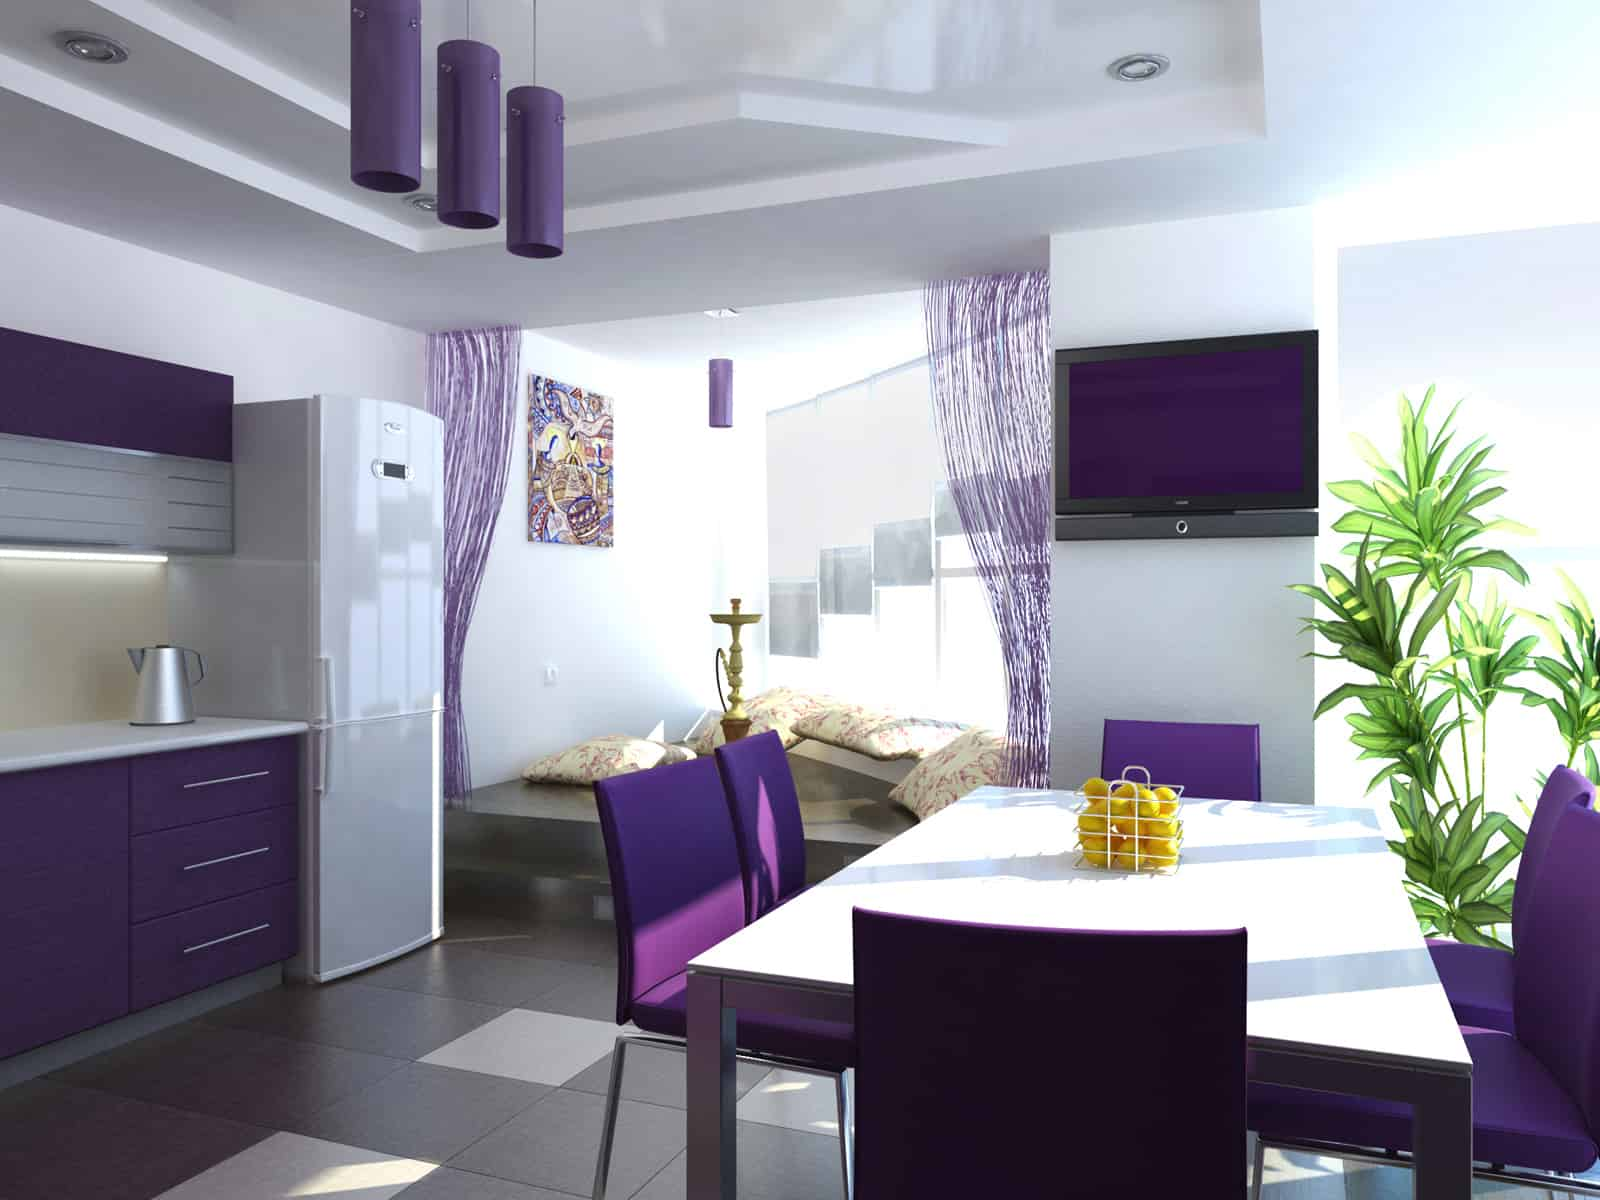 Interior design trends 2017 purple kitchen for House design interior decorating